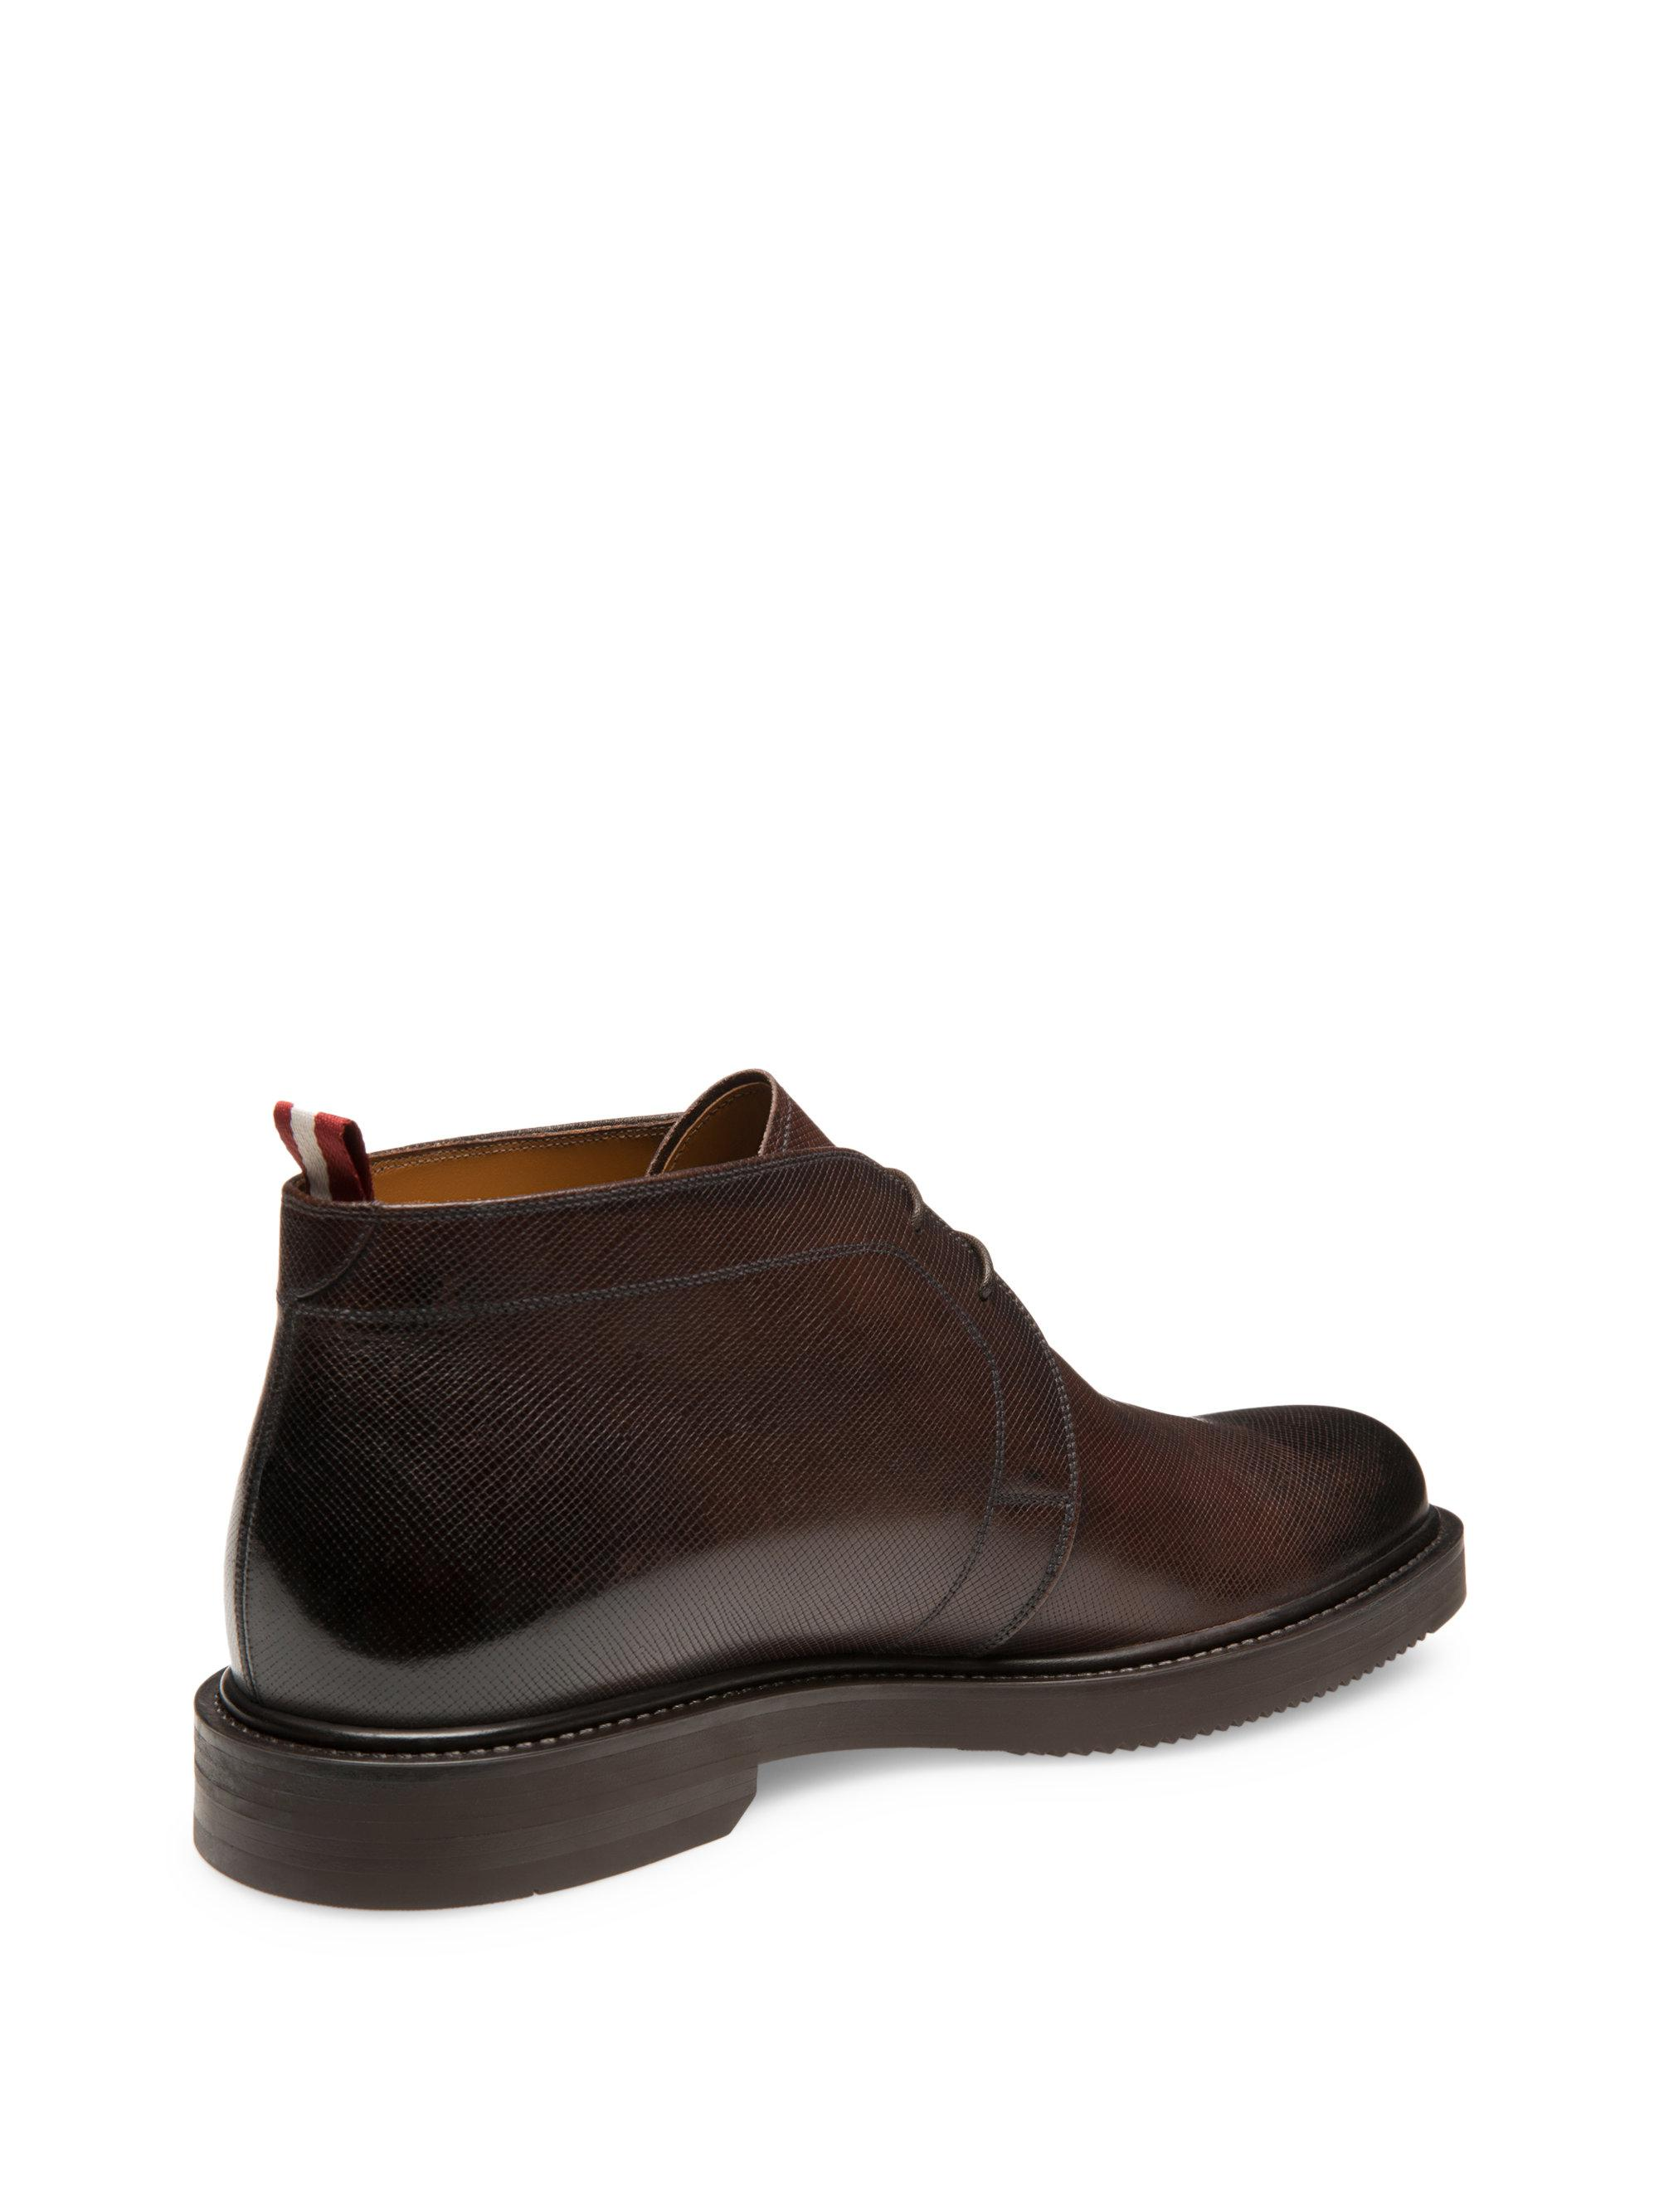 Bally Vilmar Leather Chukka Boots In Brown For Men Lyst